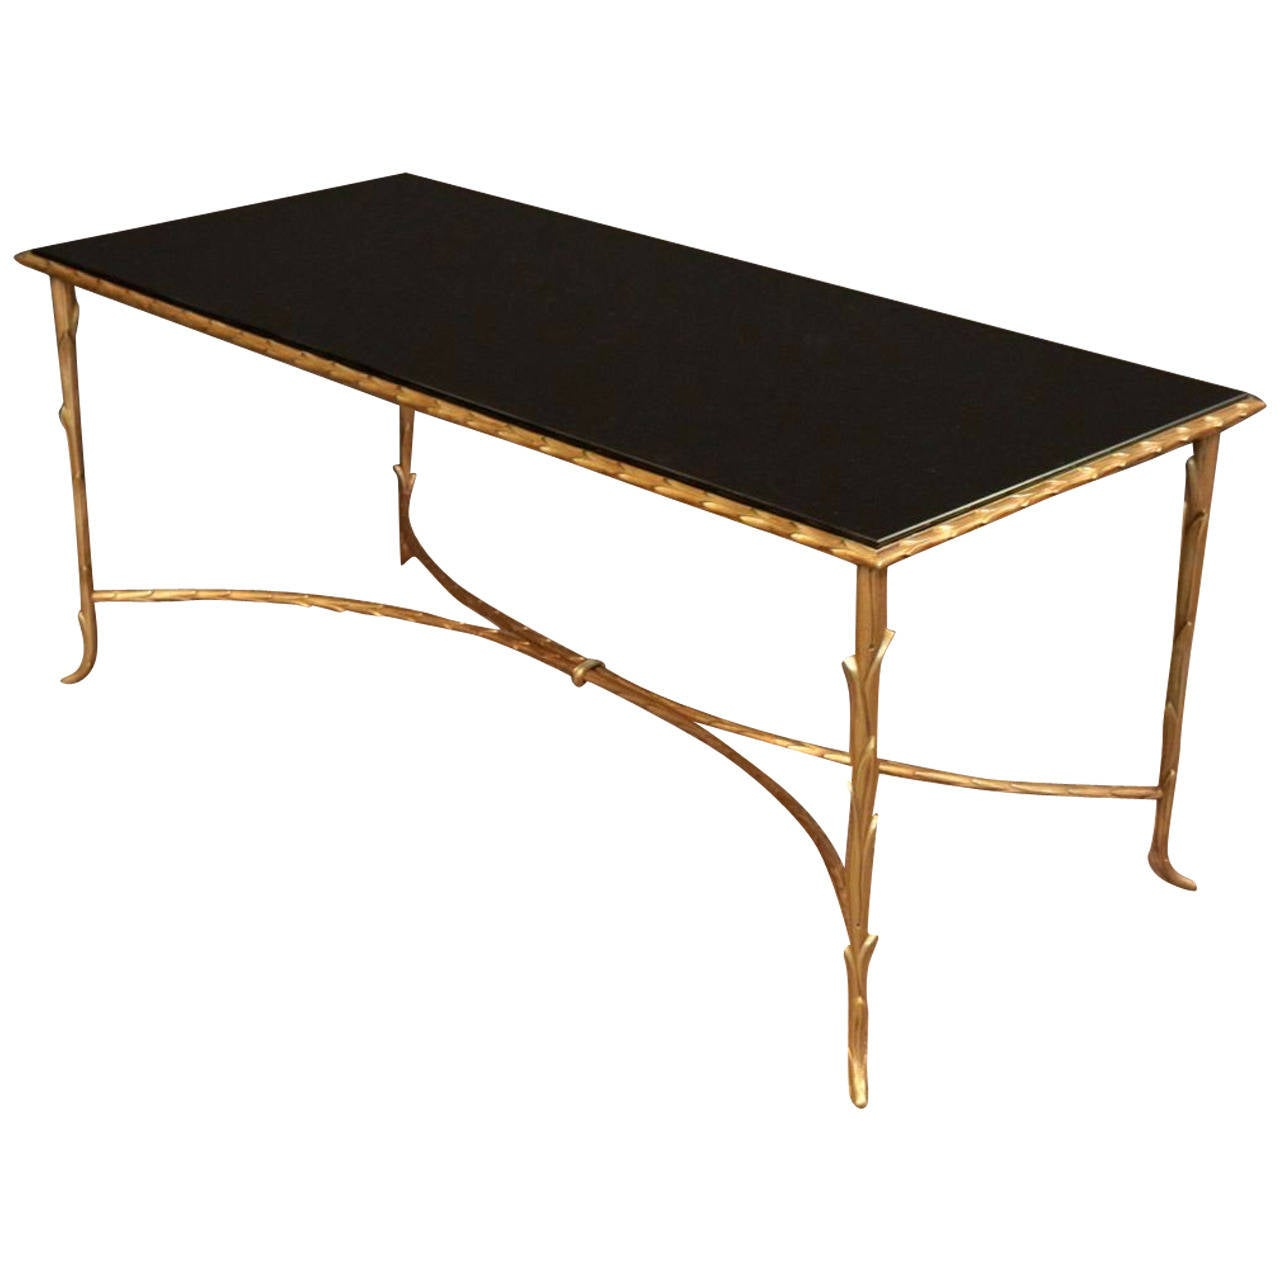 1950s bronze coffee table by bagues at 1stdibs Bronze coffee tables